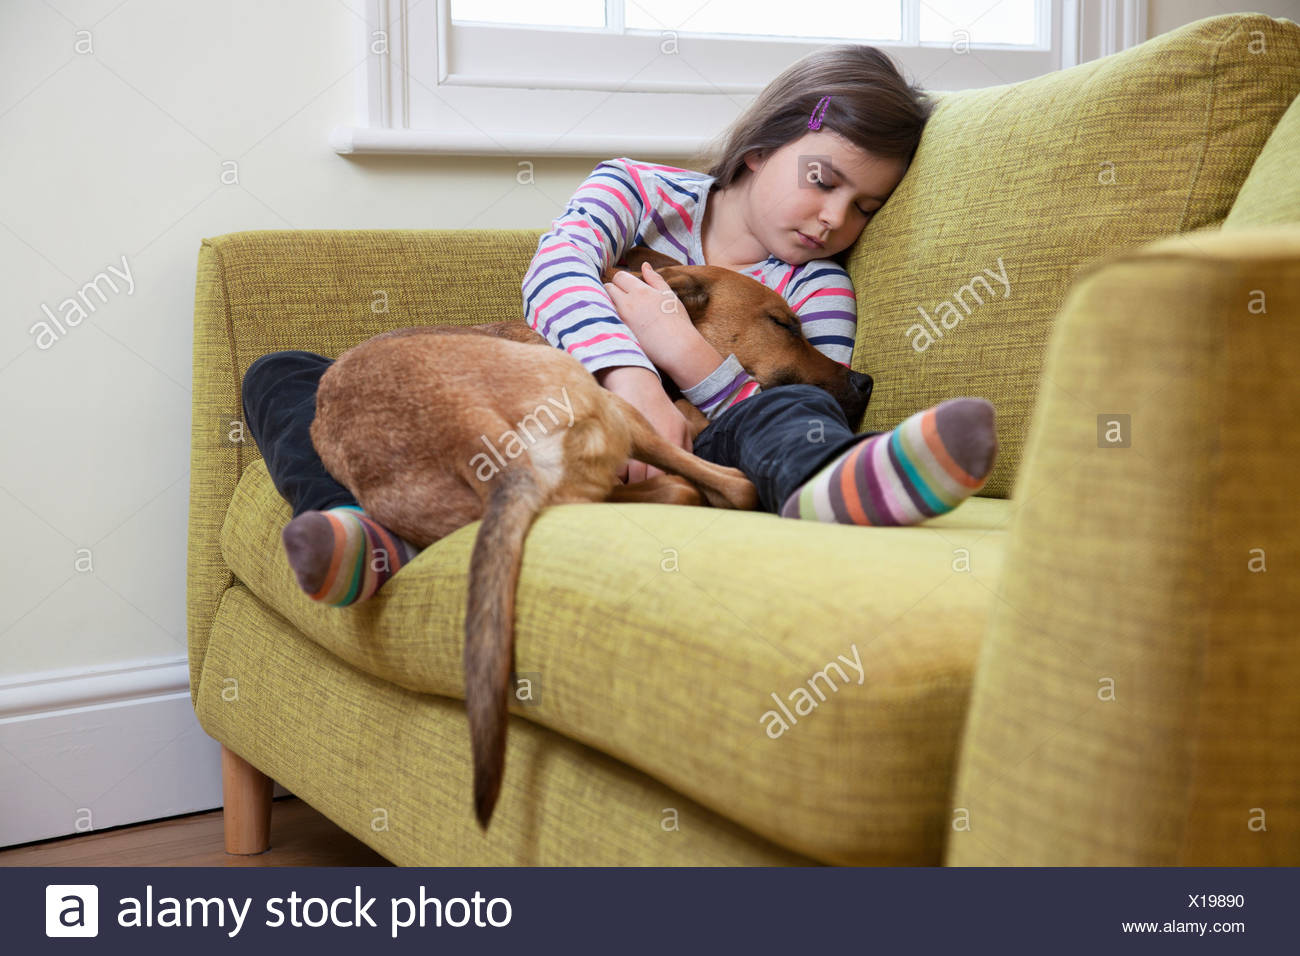 Young girl sleeping with her dog - Stock Image